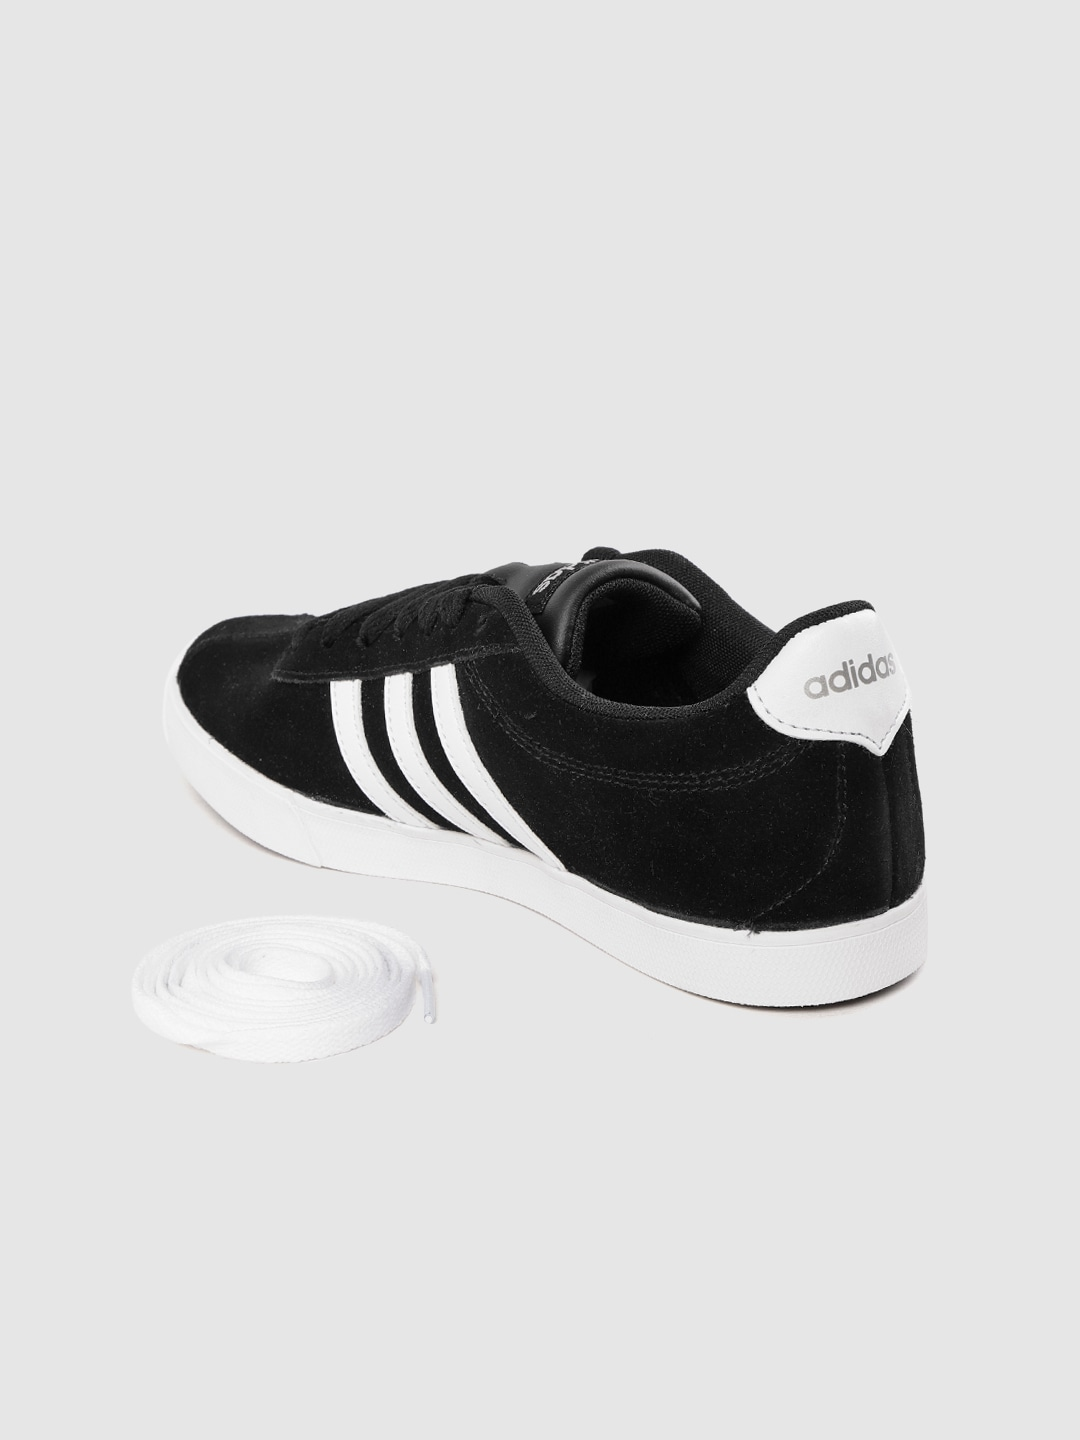 ADIDAS Women Black Solid Suede CourtSet Sneakers